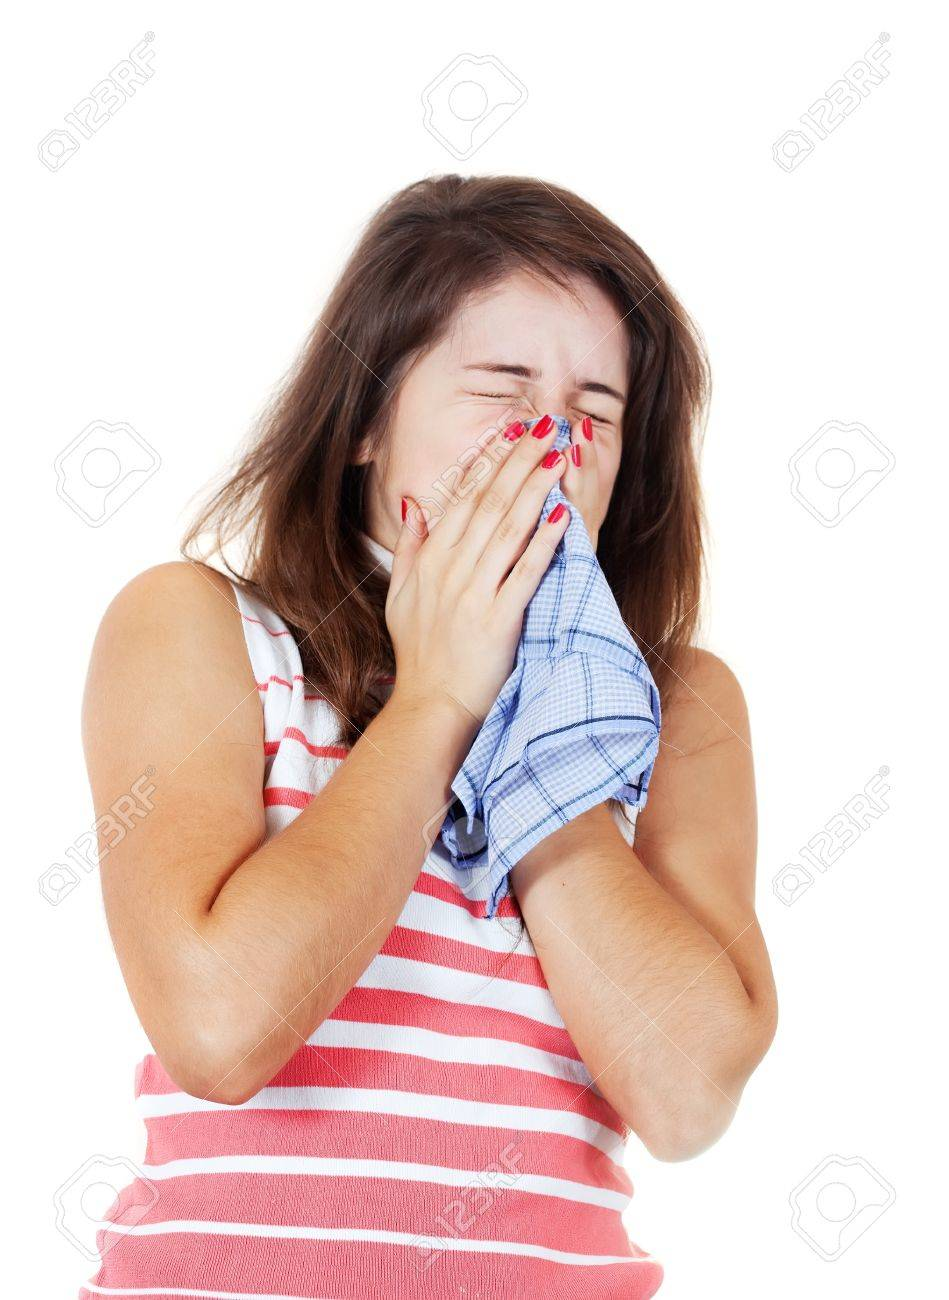 Sneezing Sick Girl With Handkerchief Isolated On White Background 949x1300